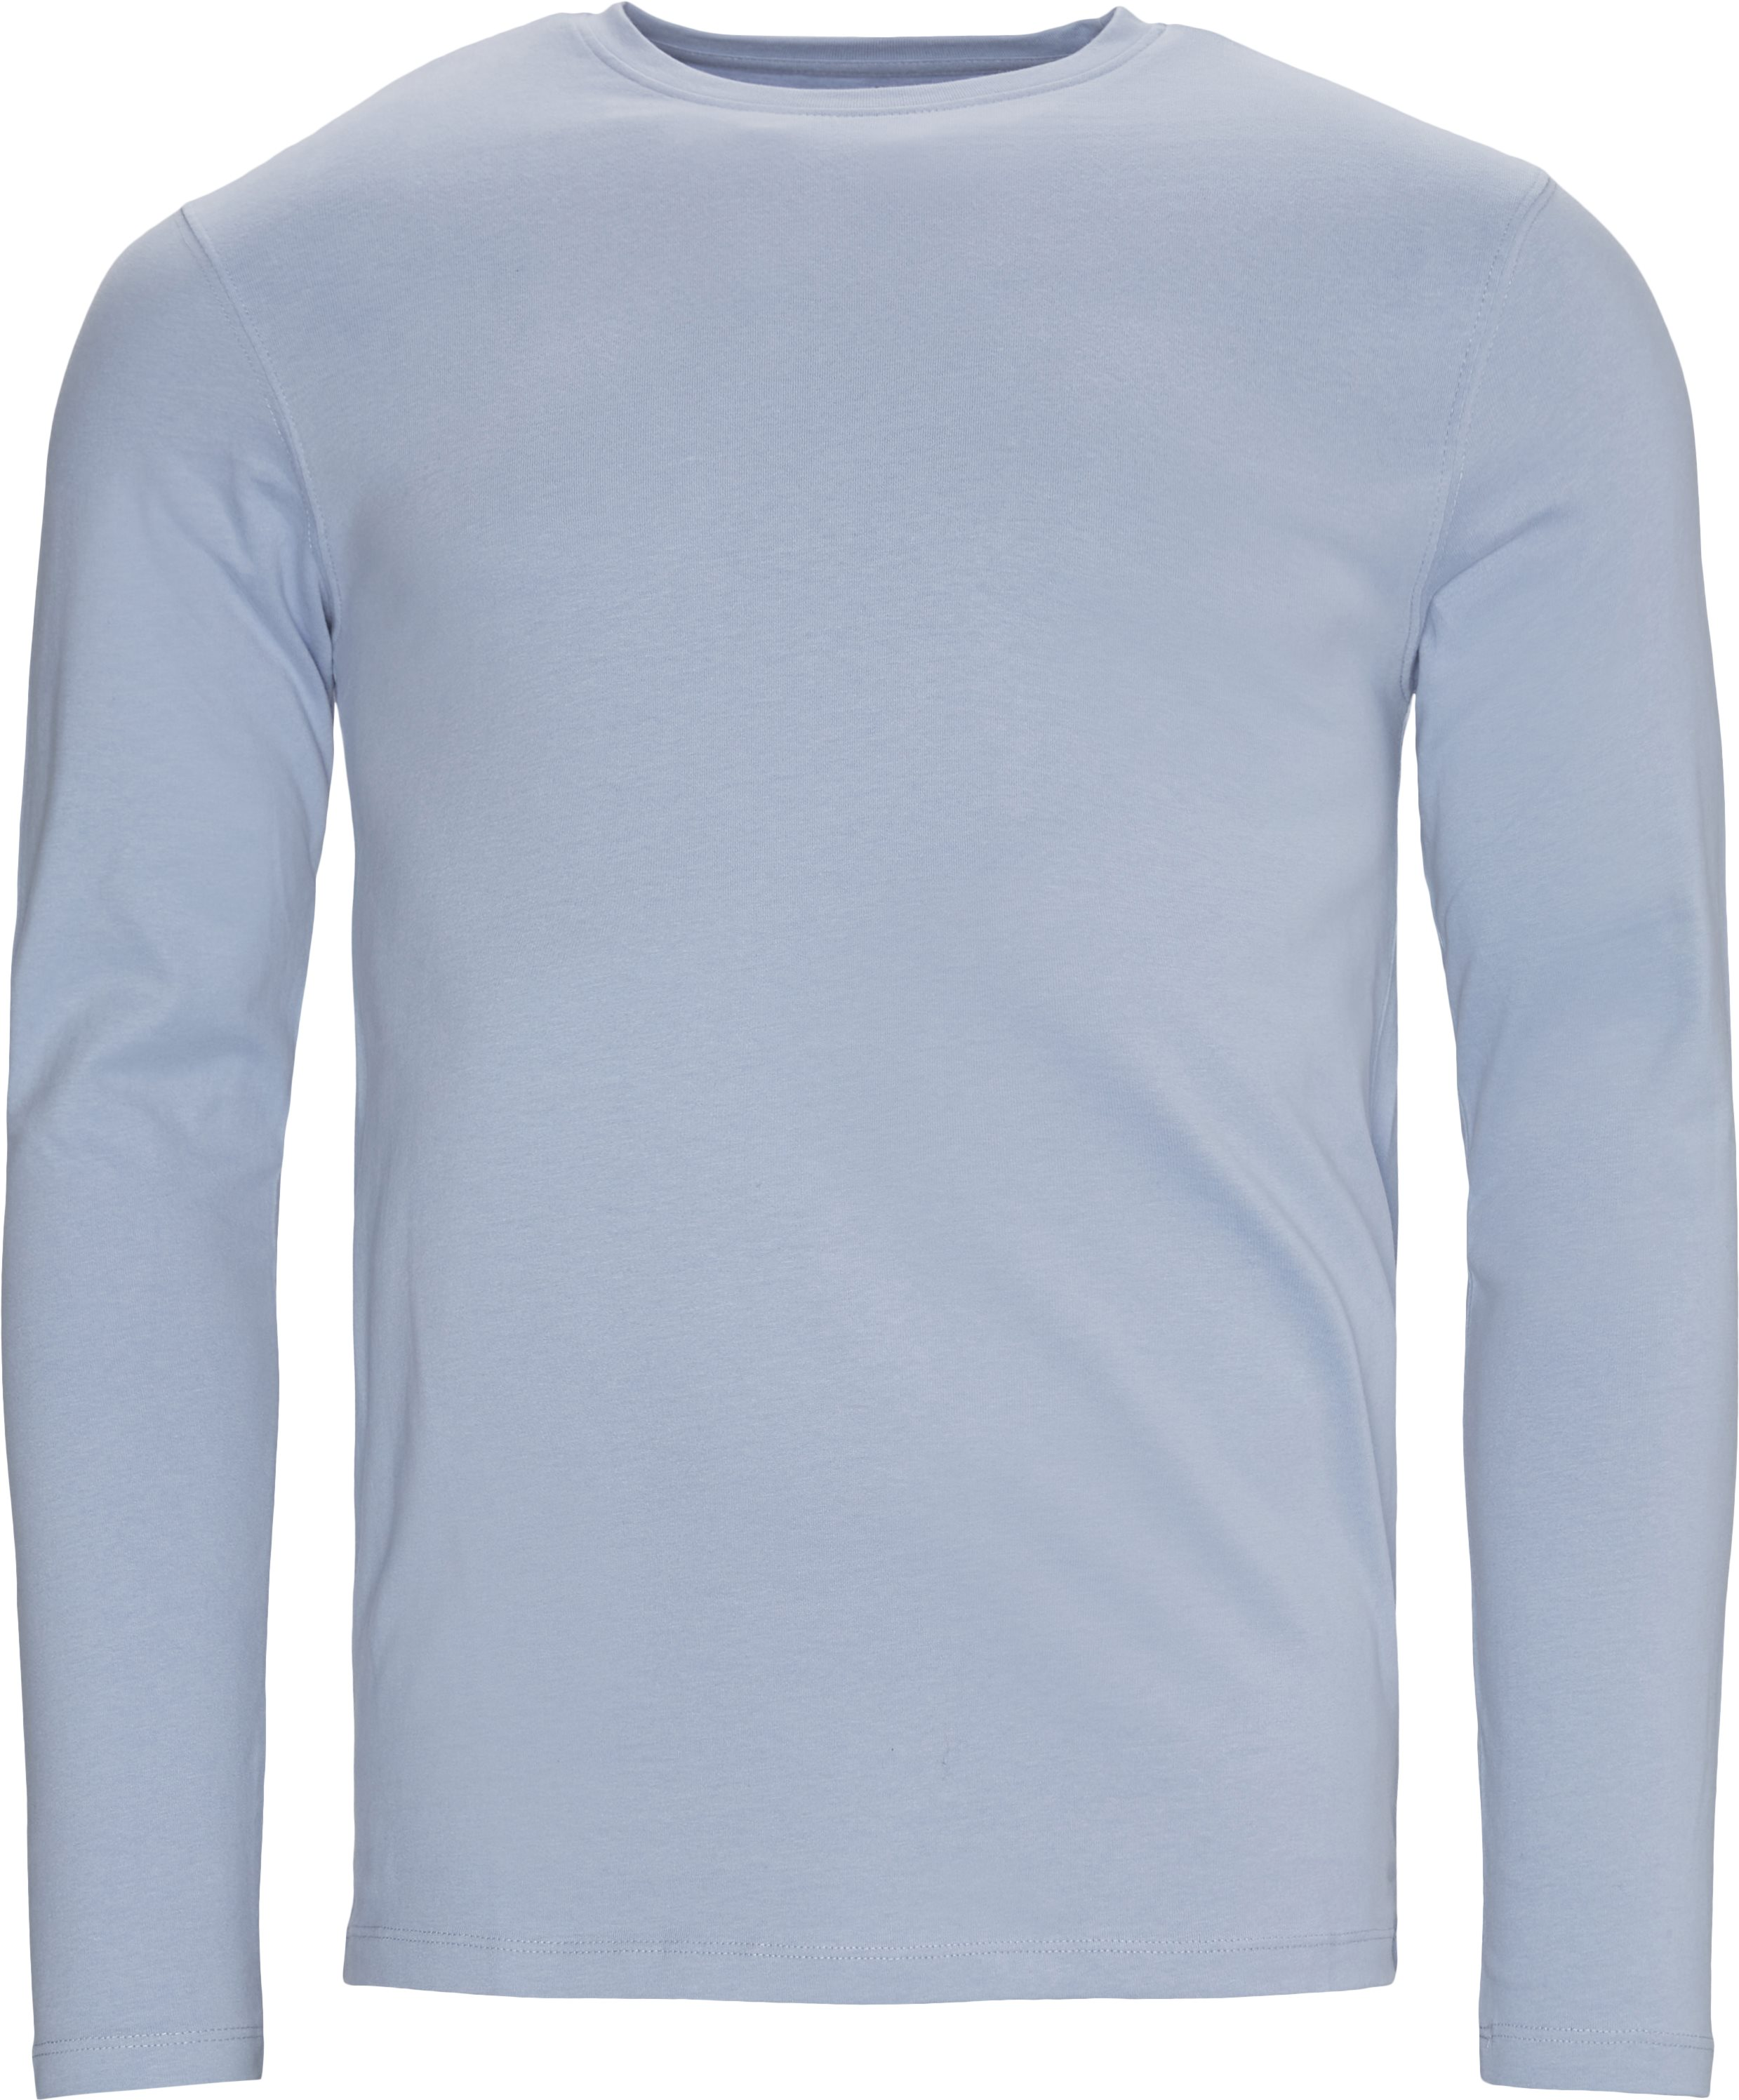 Ray Long Sleeve Tee - T-shirts - Regular - Blå